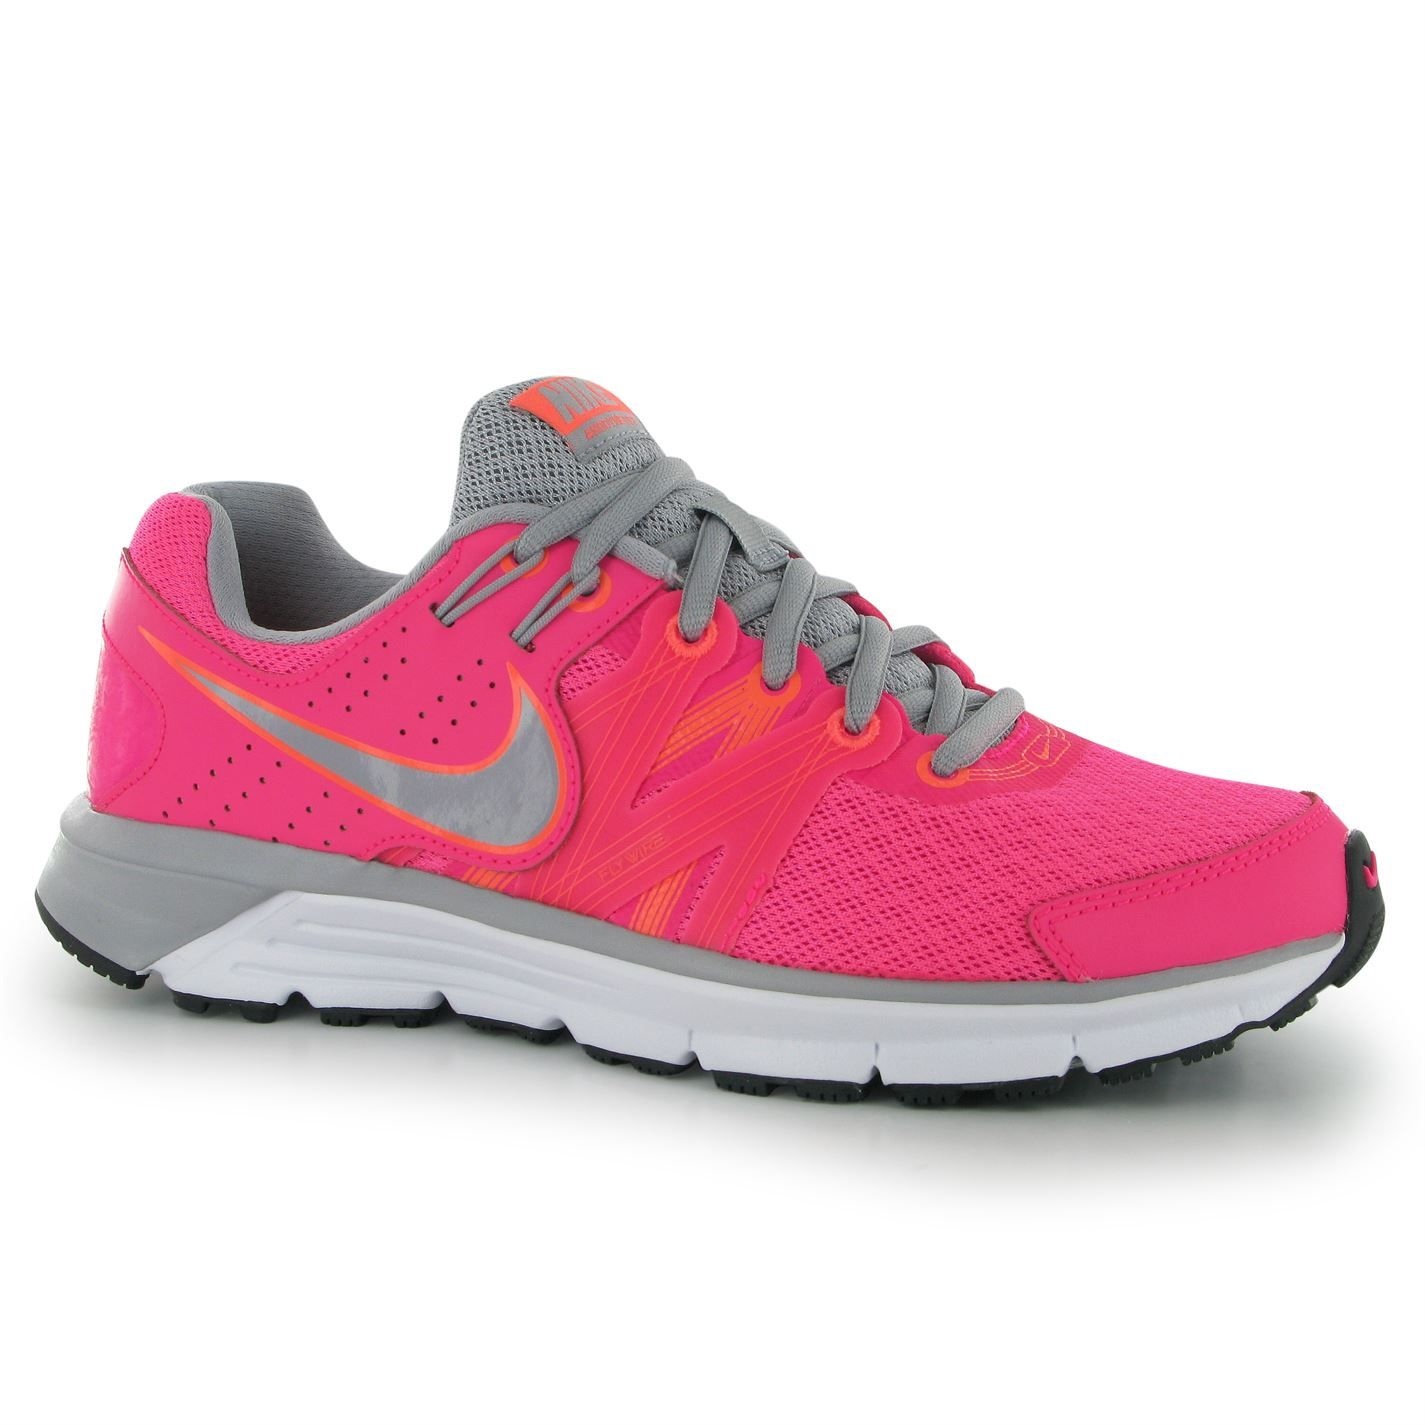 Nike | Nike Anodyne DS 2 Ladies Running Shoes | Ladies Running Shoes